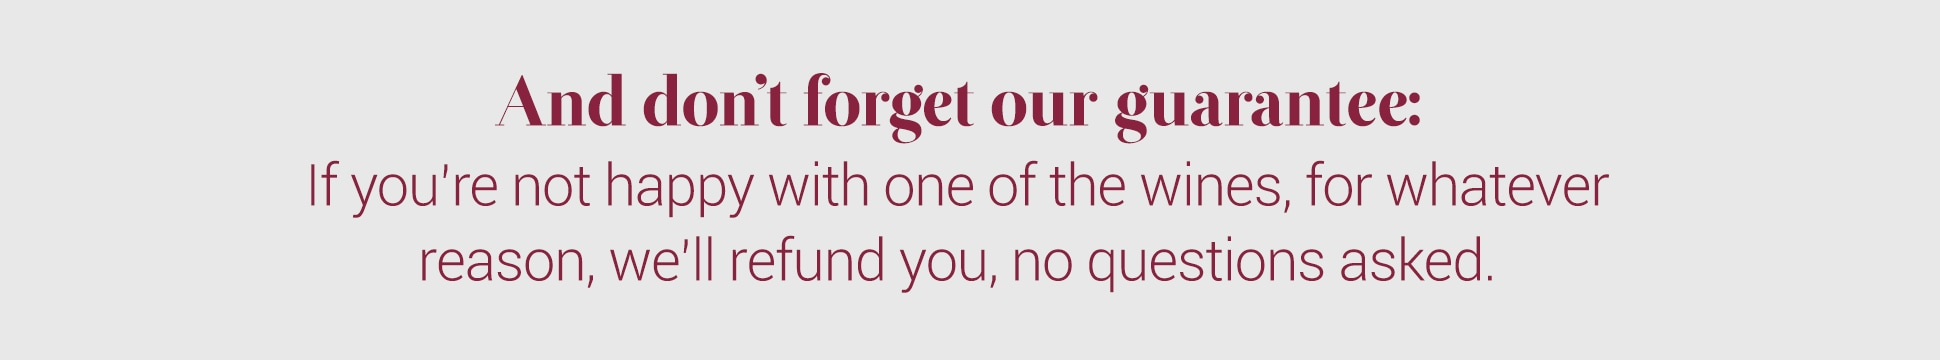 And don't forget our guarantee: